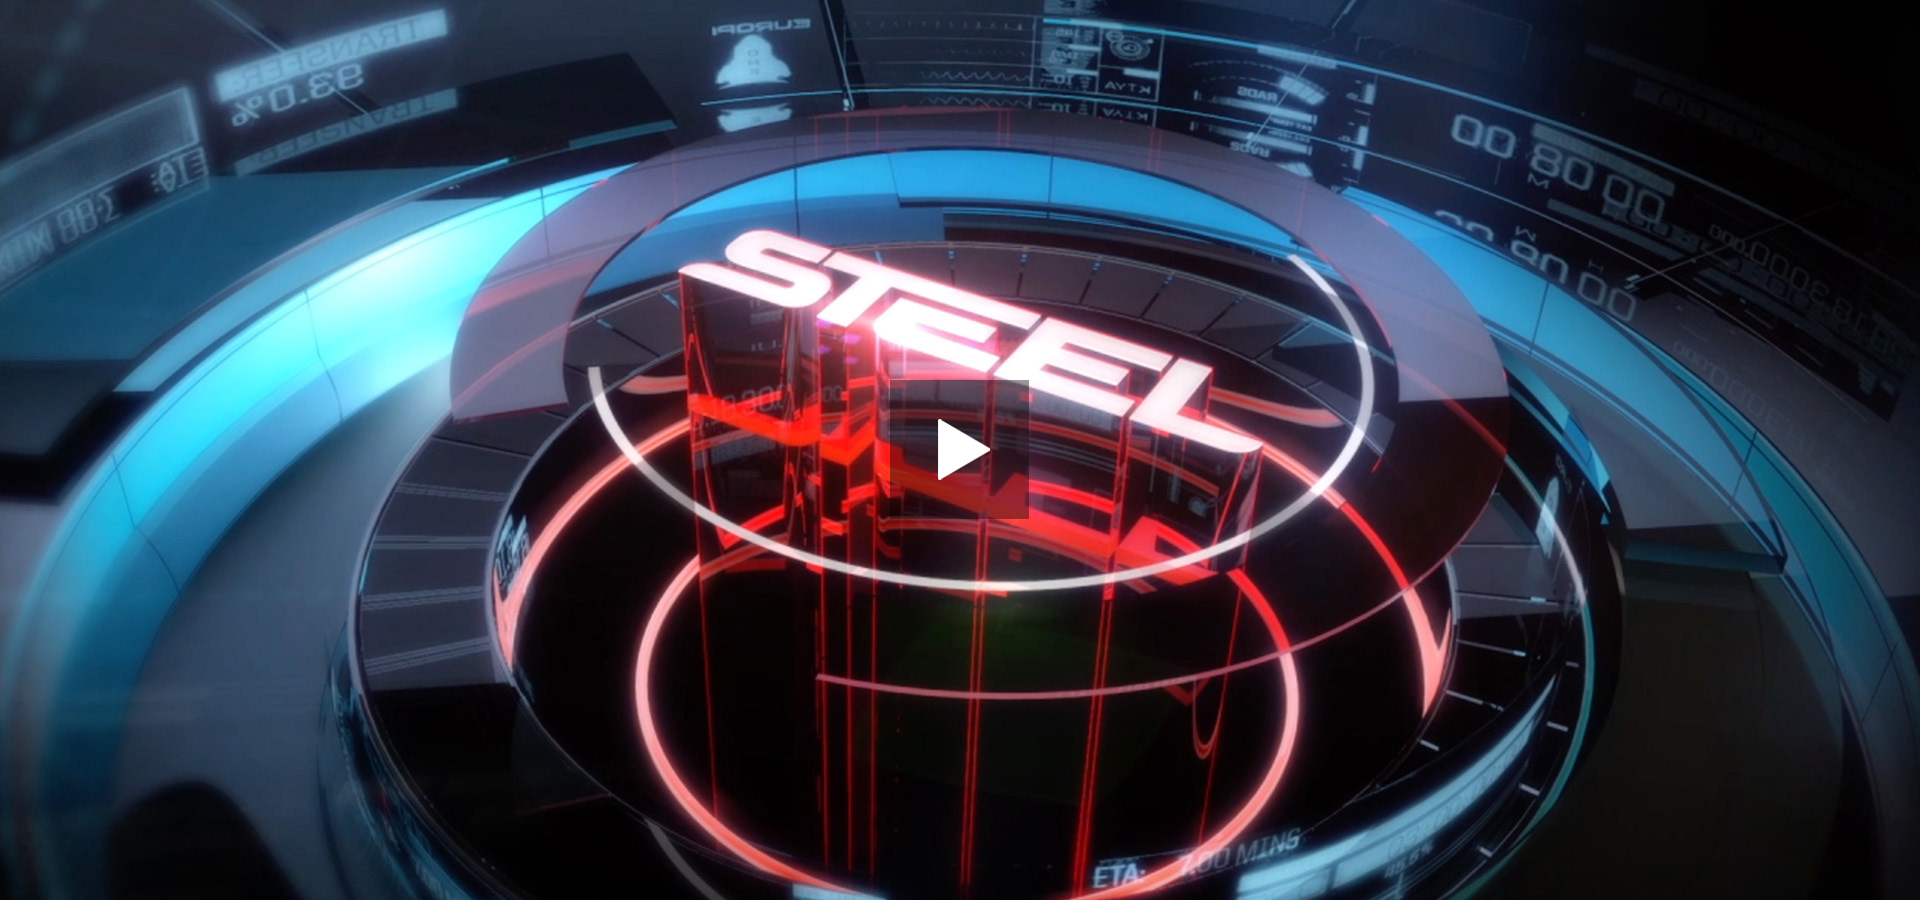 Monkey Talkie per Premium Steel - Broadcast design - TV Branding - Promo - Idents